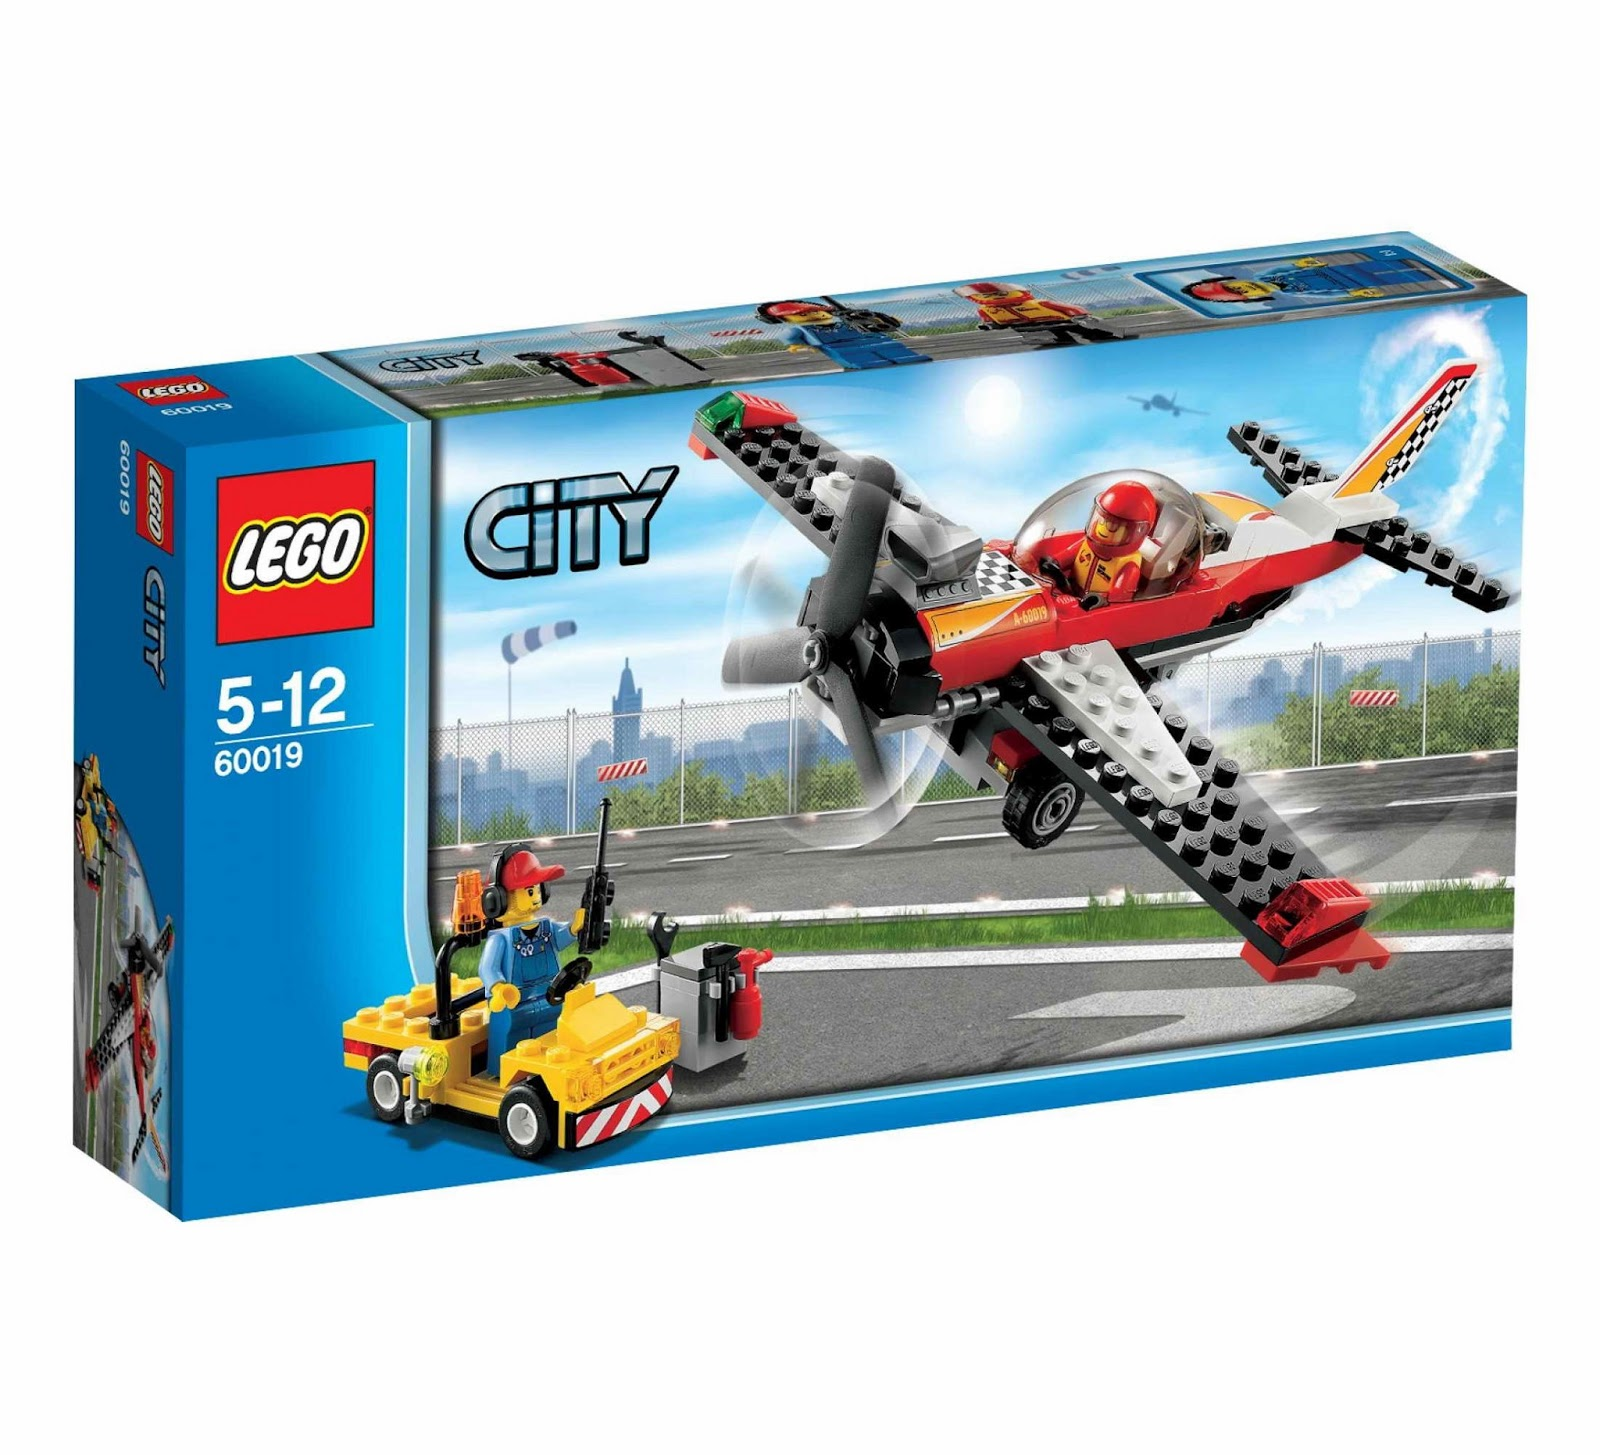 coolest remote control cars with 100513 Lego 60019 Stunt Plane Box Art on Electric Cars For Kids likewise 382594930820001827 in addition The First Rule Of Robotics Or May Robot Harm A Human Being furthermore Real Life Mech Robots Gundam further Lalaloopsy Littles Squirt Lil Top.